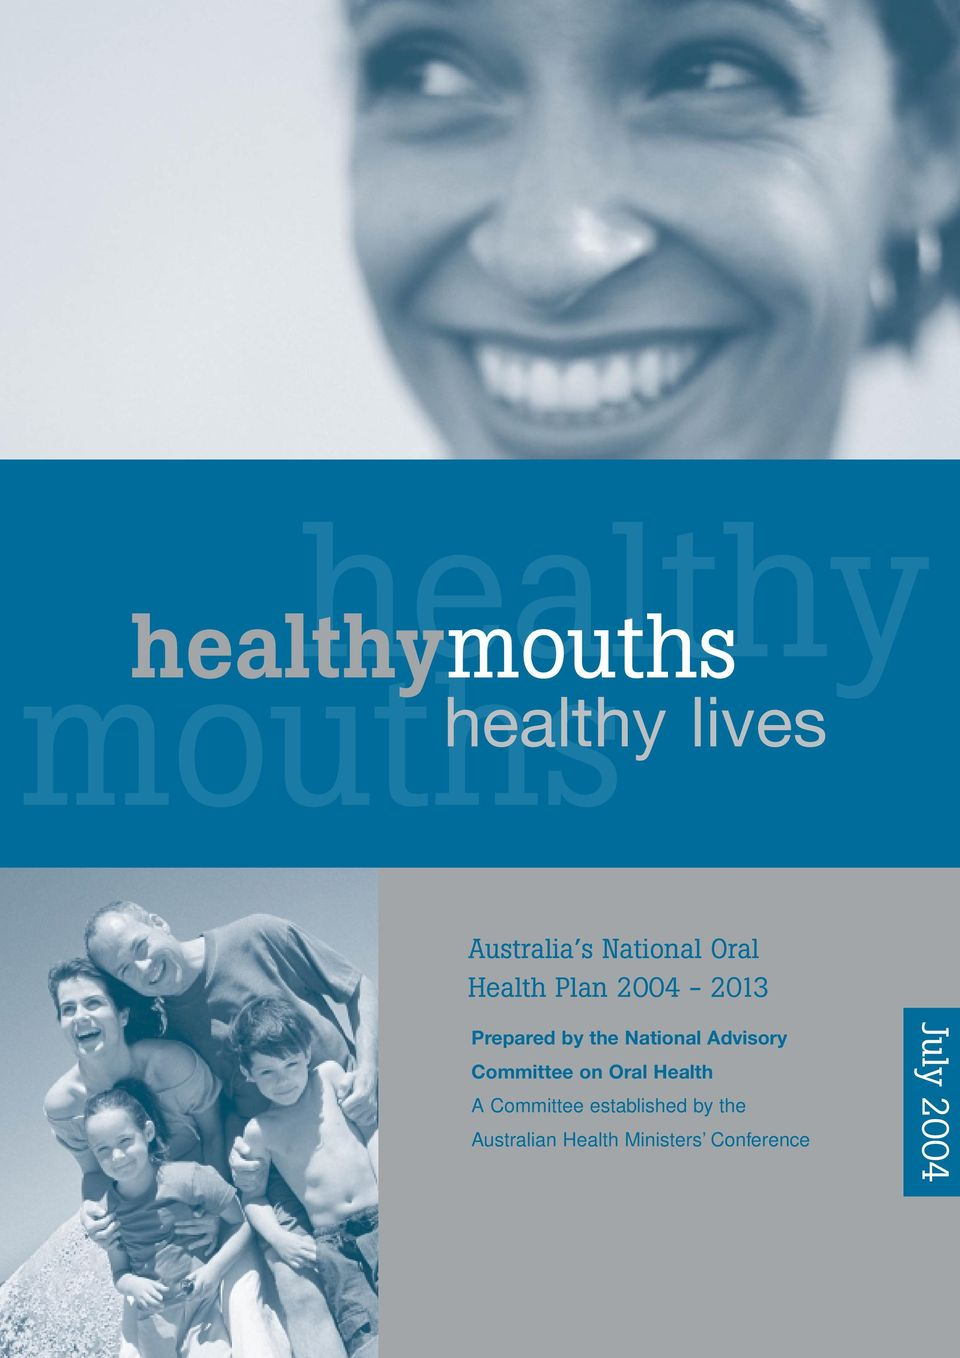 National Advisory Committee on Oral Health A Committee